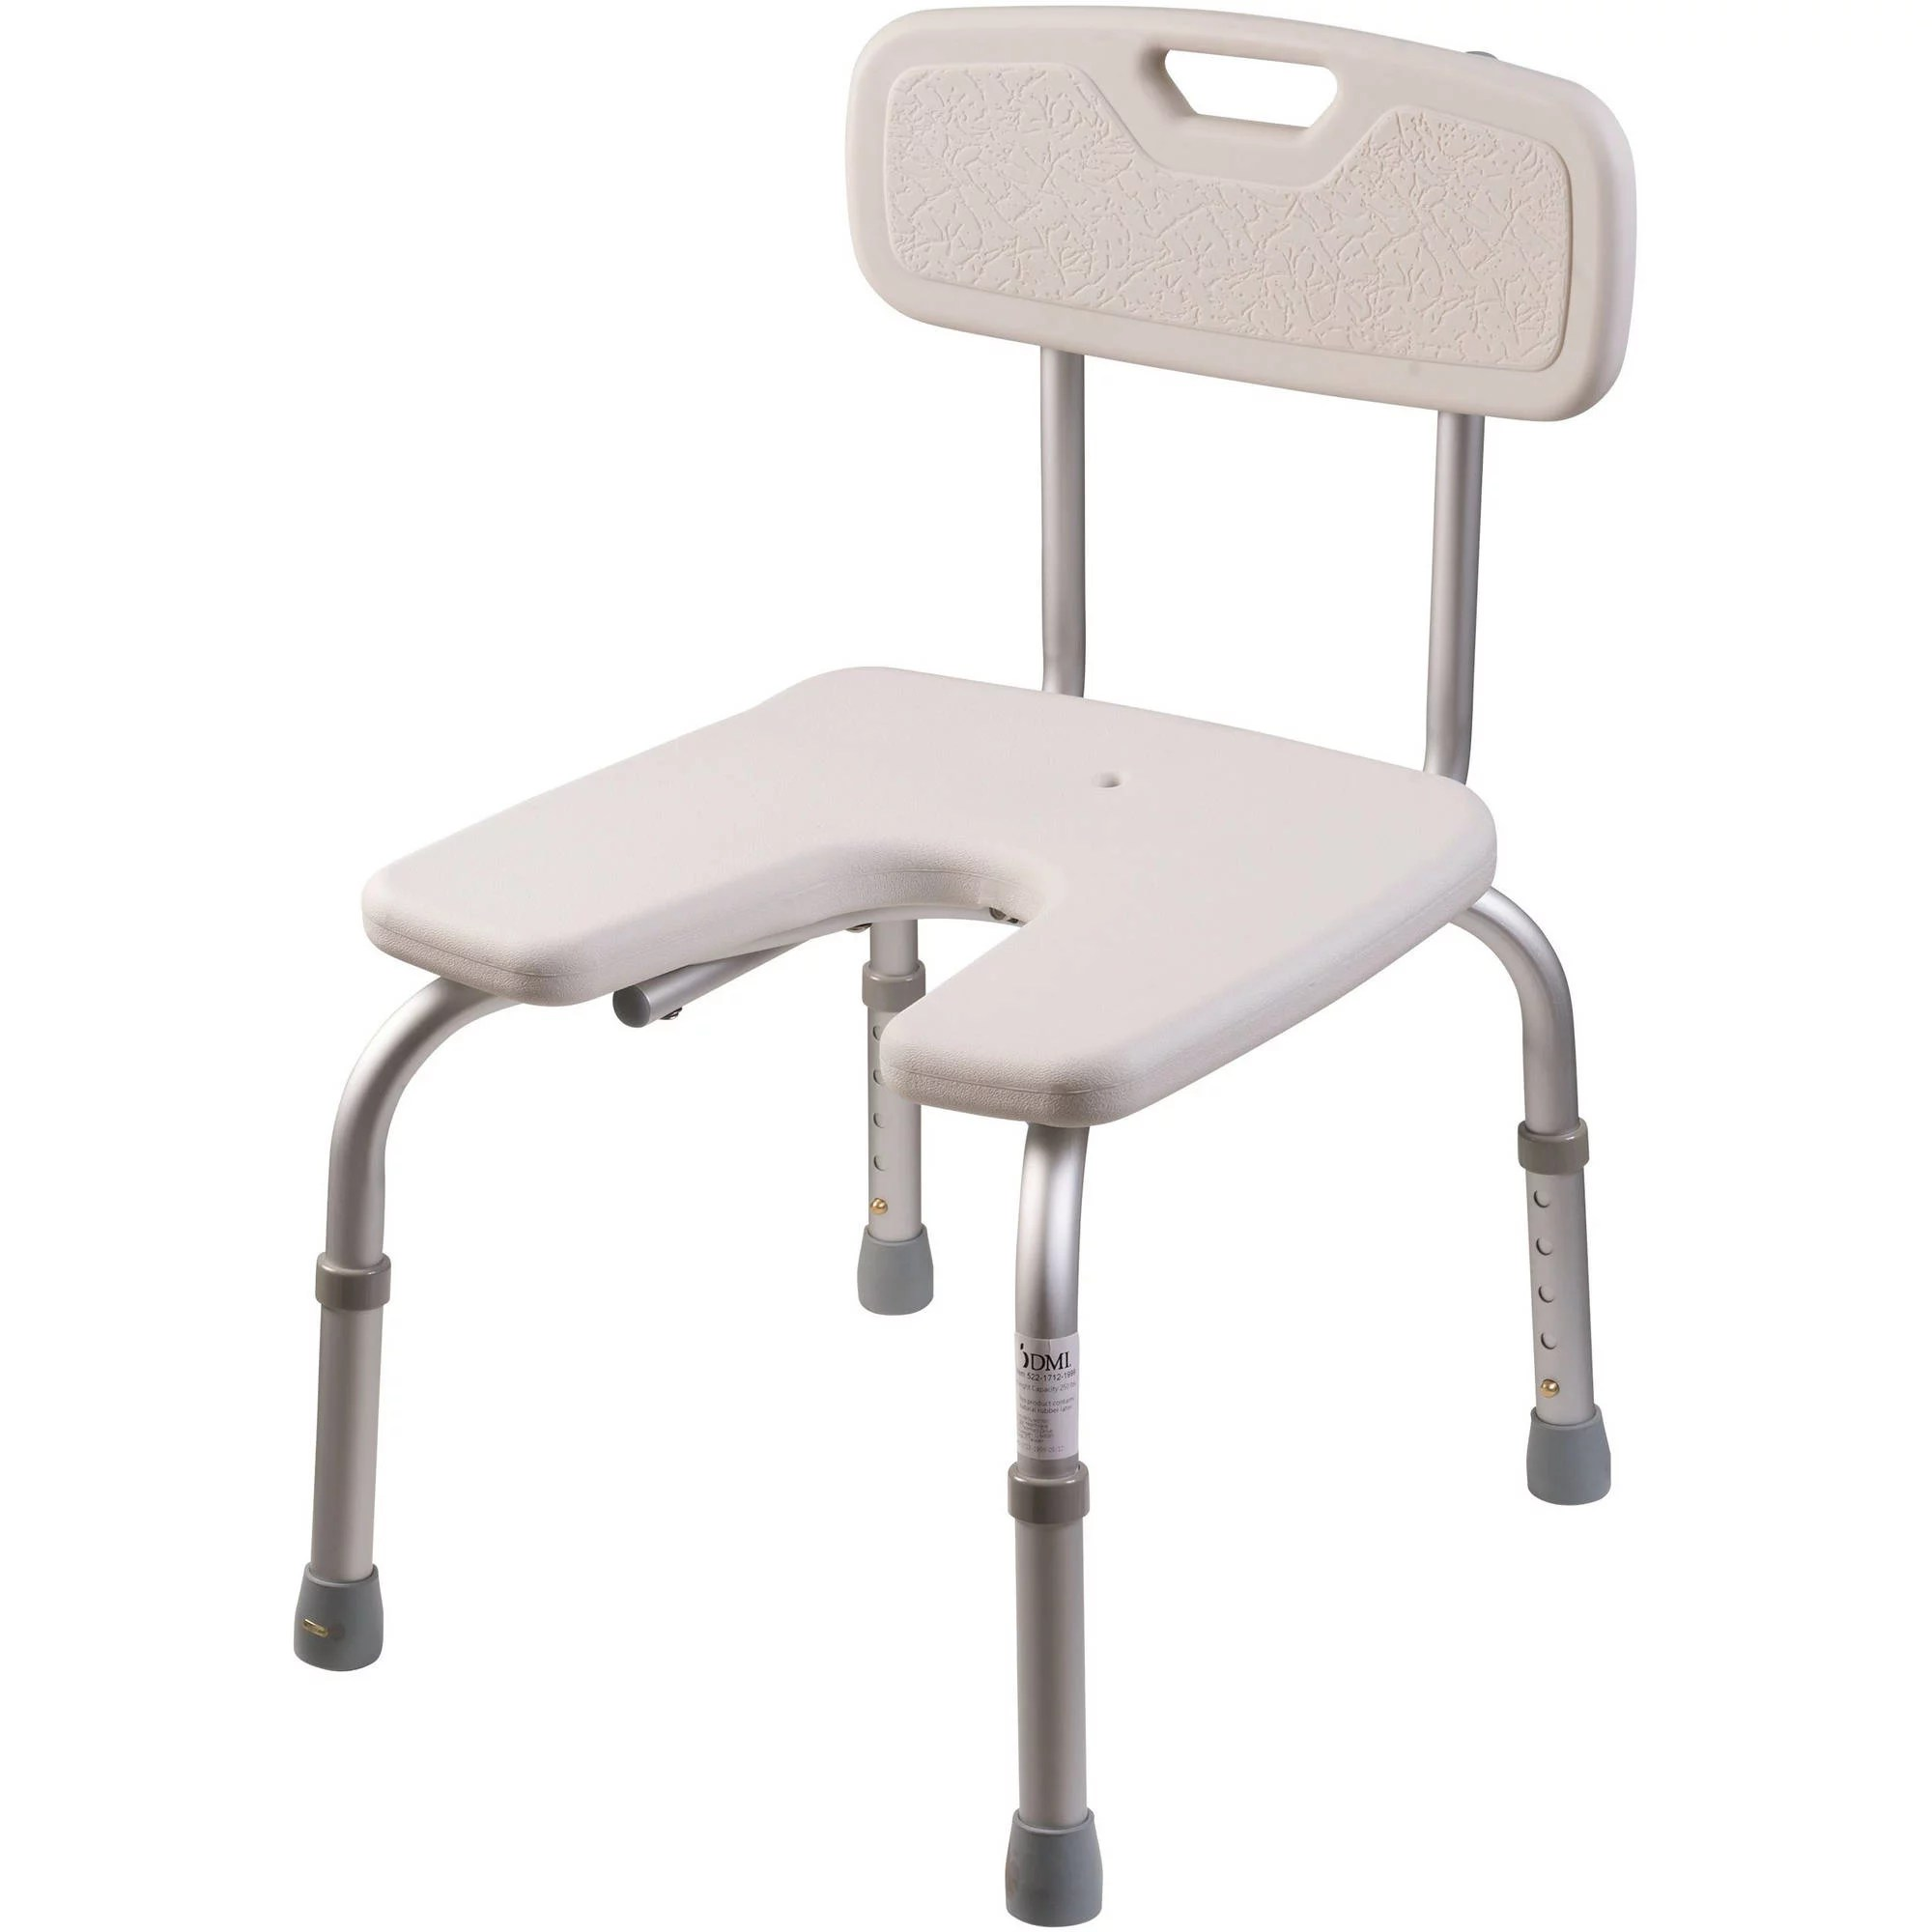 handicap shower chair rush seat dmi with removable back for seniors and elderly u shape bath bench